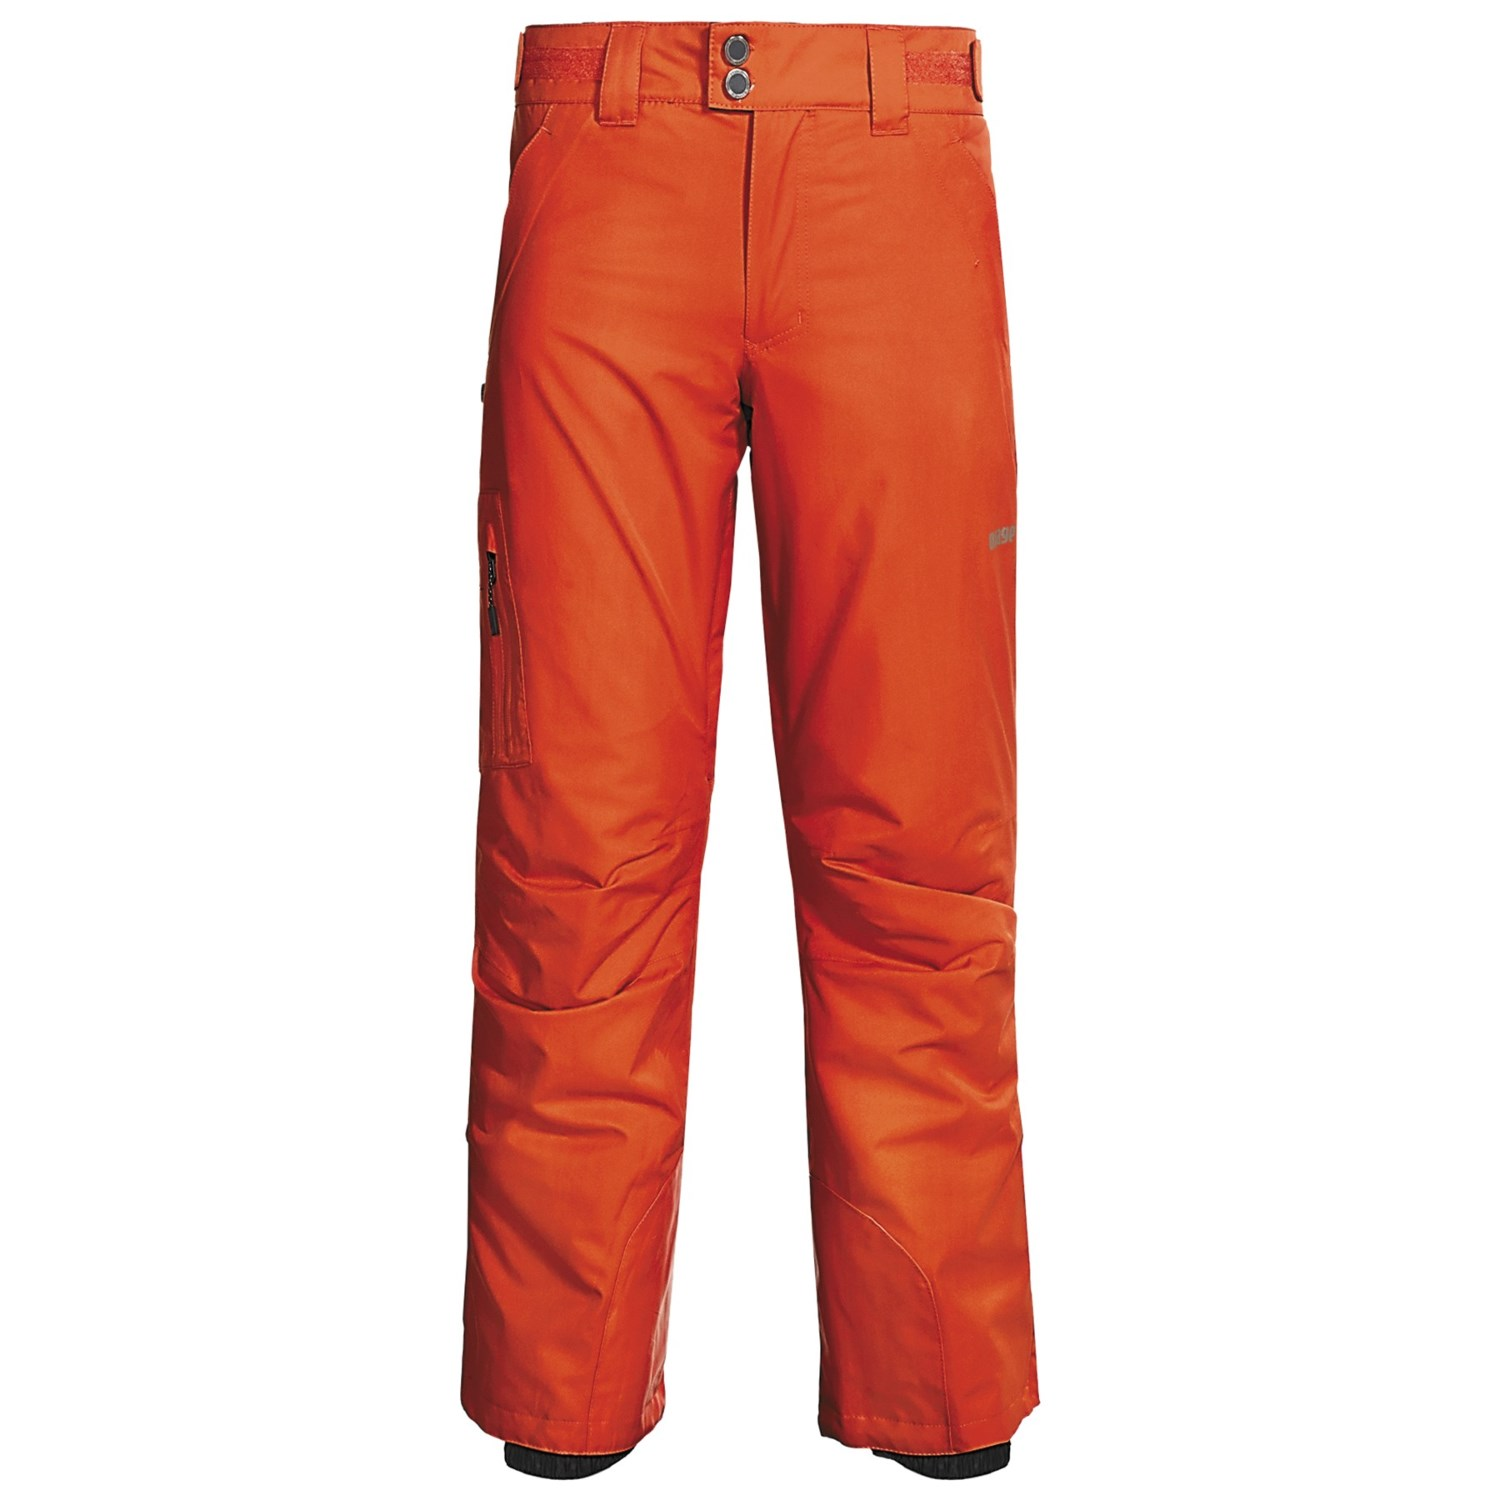 orage-glenwood-gore-tex-snow-pants-waterproof-insulated-for-men-in-spice%7Ep%7E3876g_04%7E1500.jpg